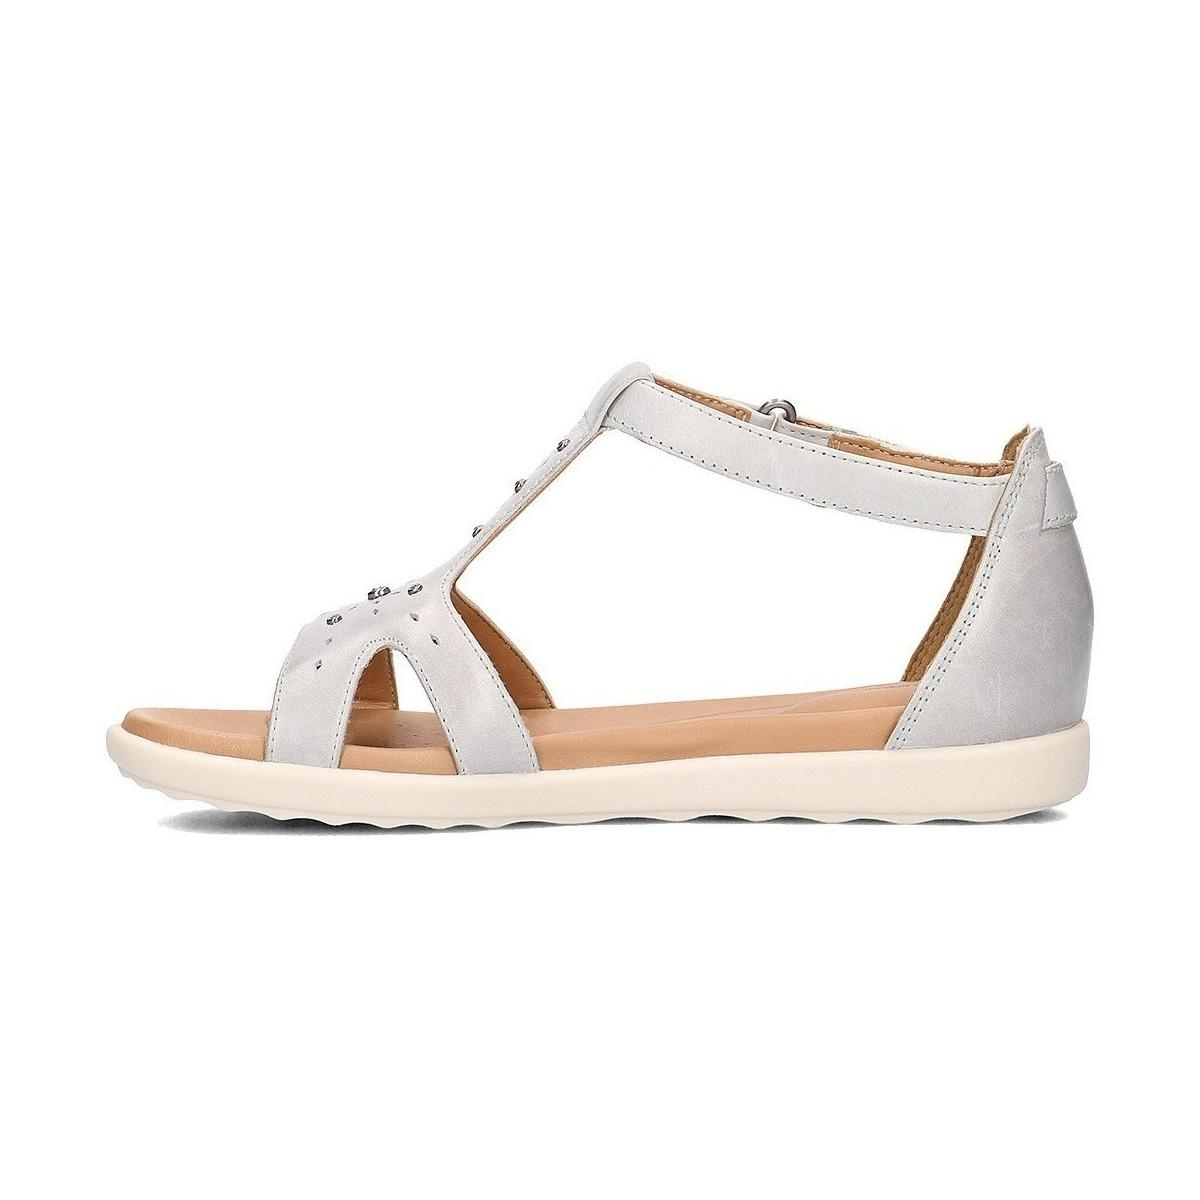 Clarks 26133242 women's Sandals in Free Shipping 2018 Newest Affordable Online Sale High Quality Uh9qDbmEsq